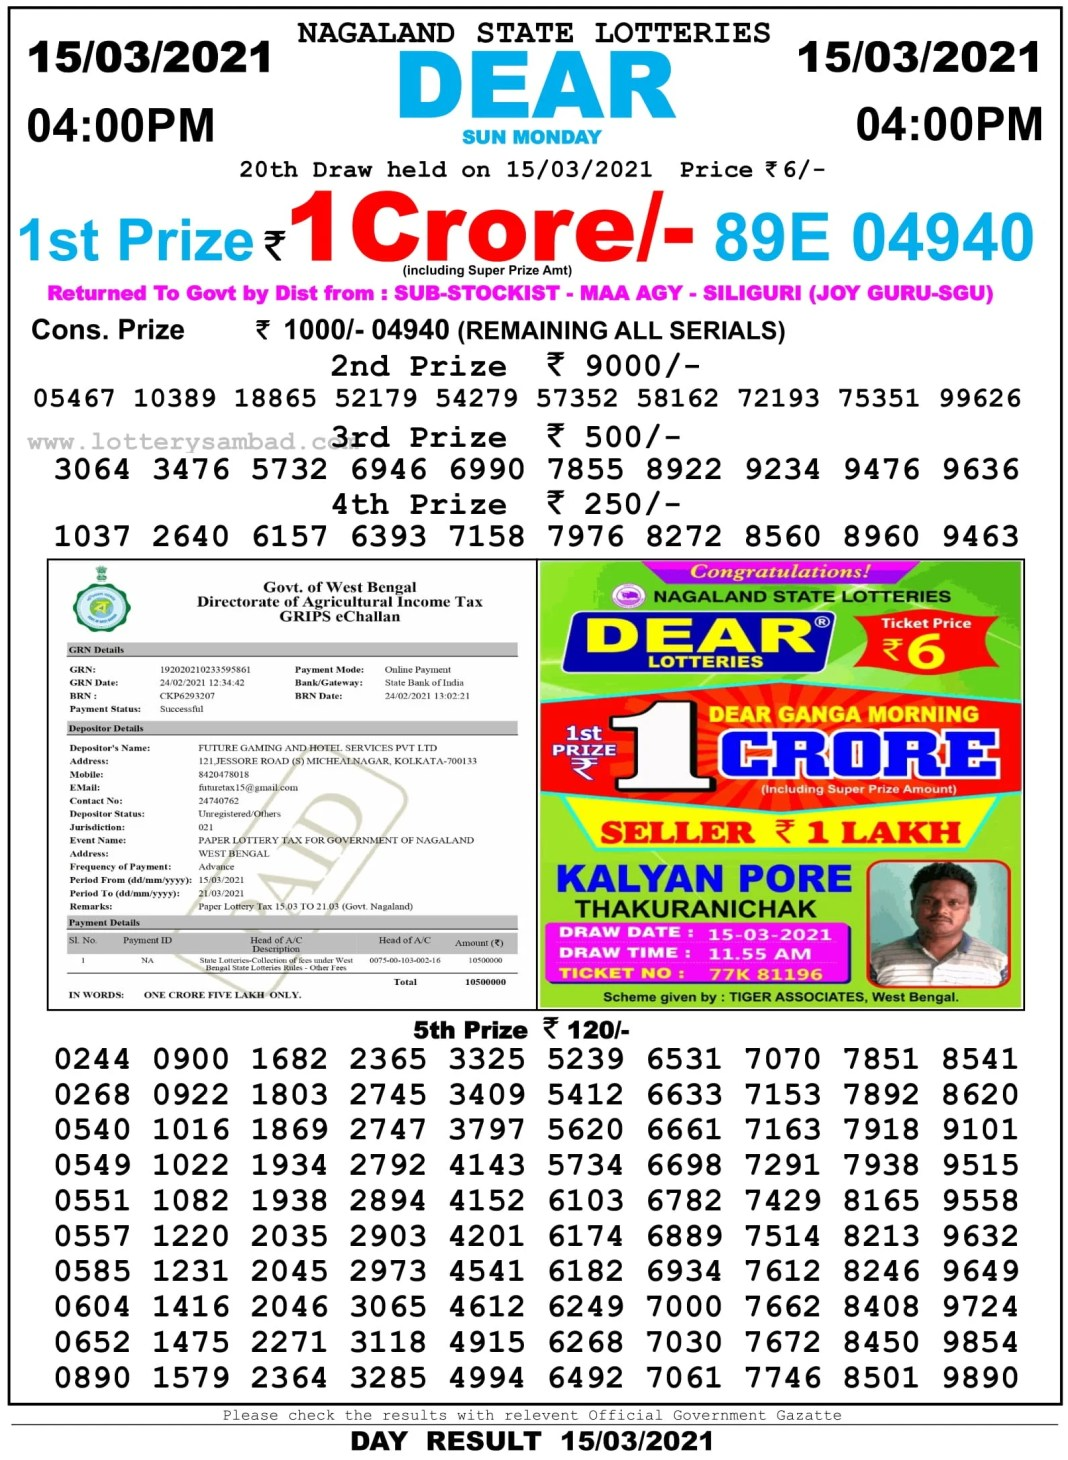 Nagaland State Lottery Result 4 PM 15.3.2021